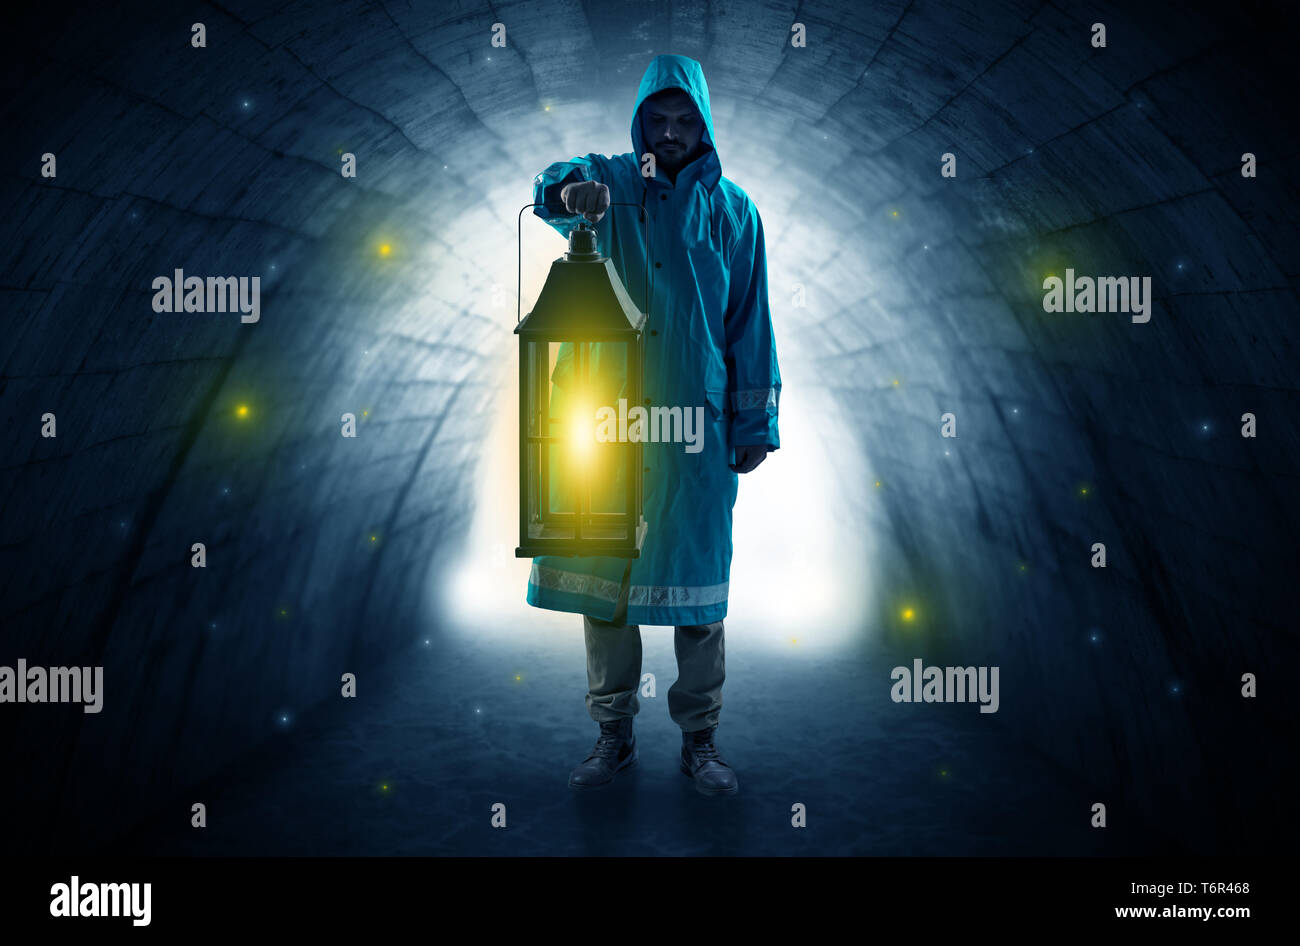 Ugly man in raincoat walking with glowing lantern in a dark tunnel - Stock Image